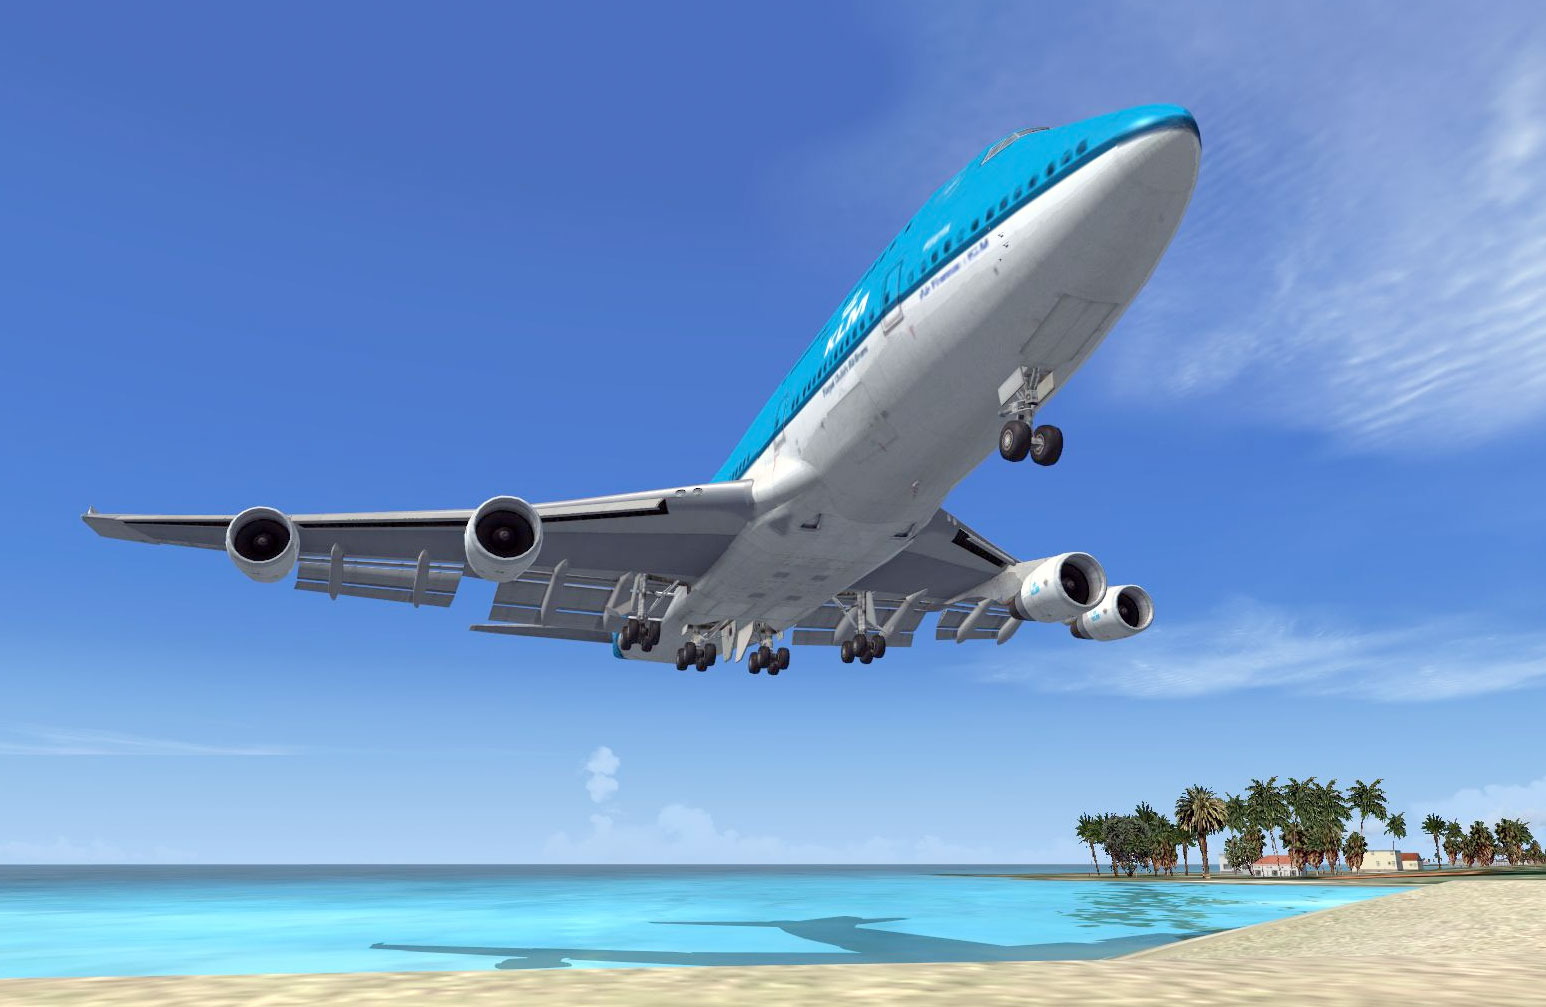 Free Downloads for FSX, FS2004 & X-Plane - Flight Simulator